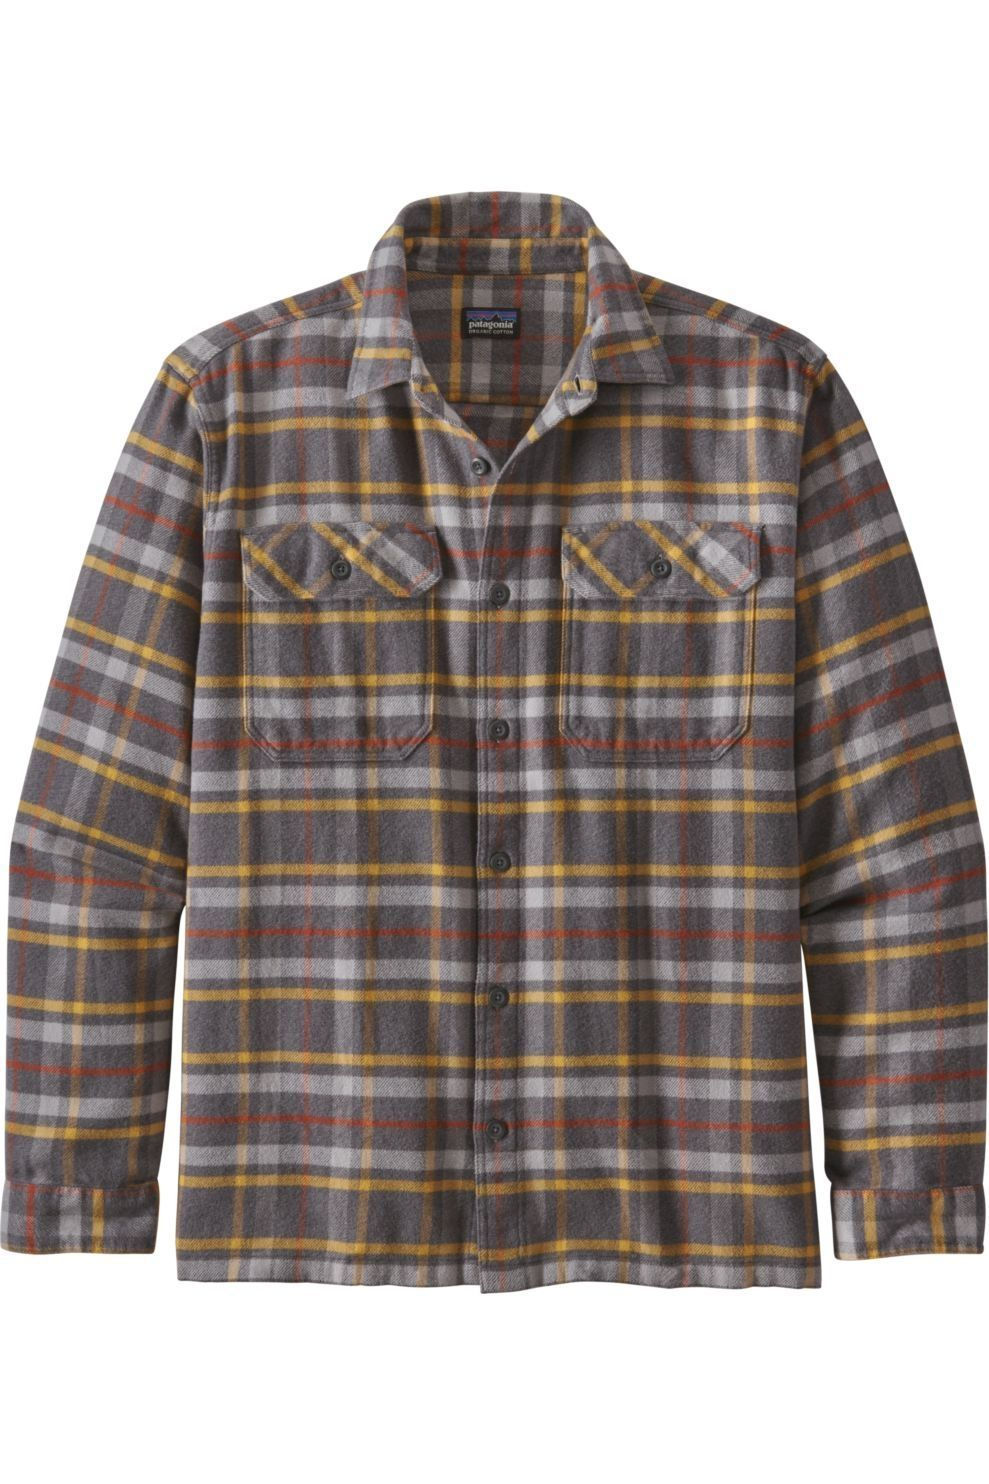 Patagonia Chemise Fjord Flannel pour homme